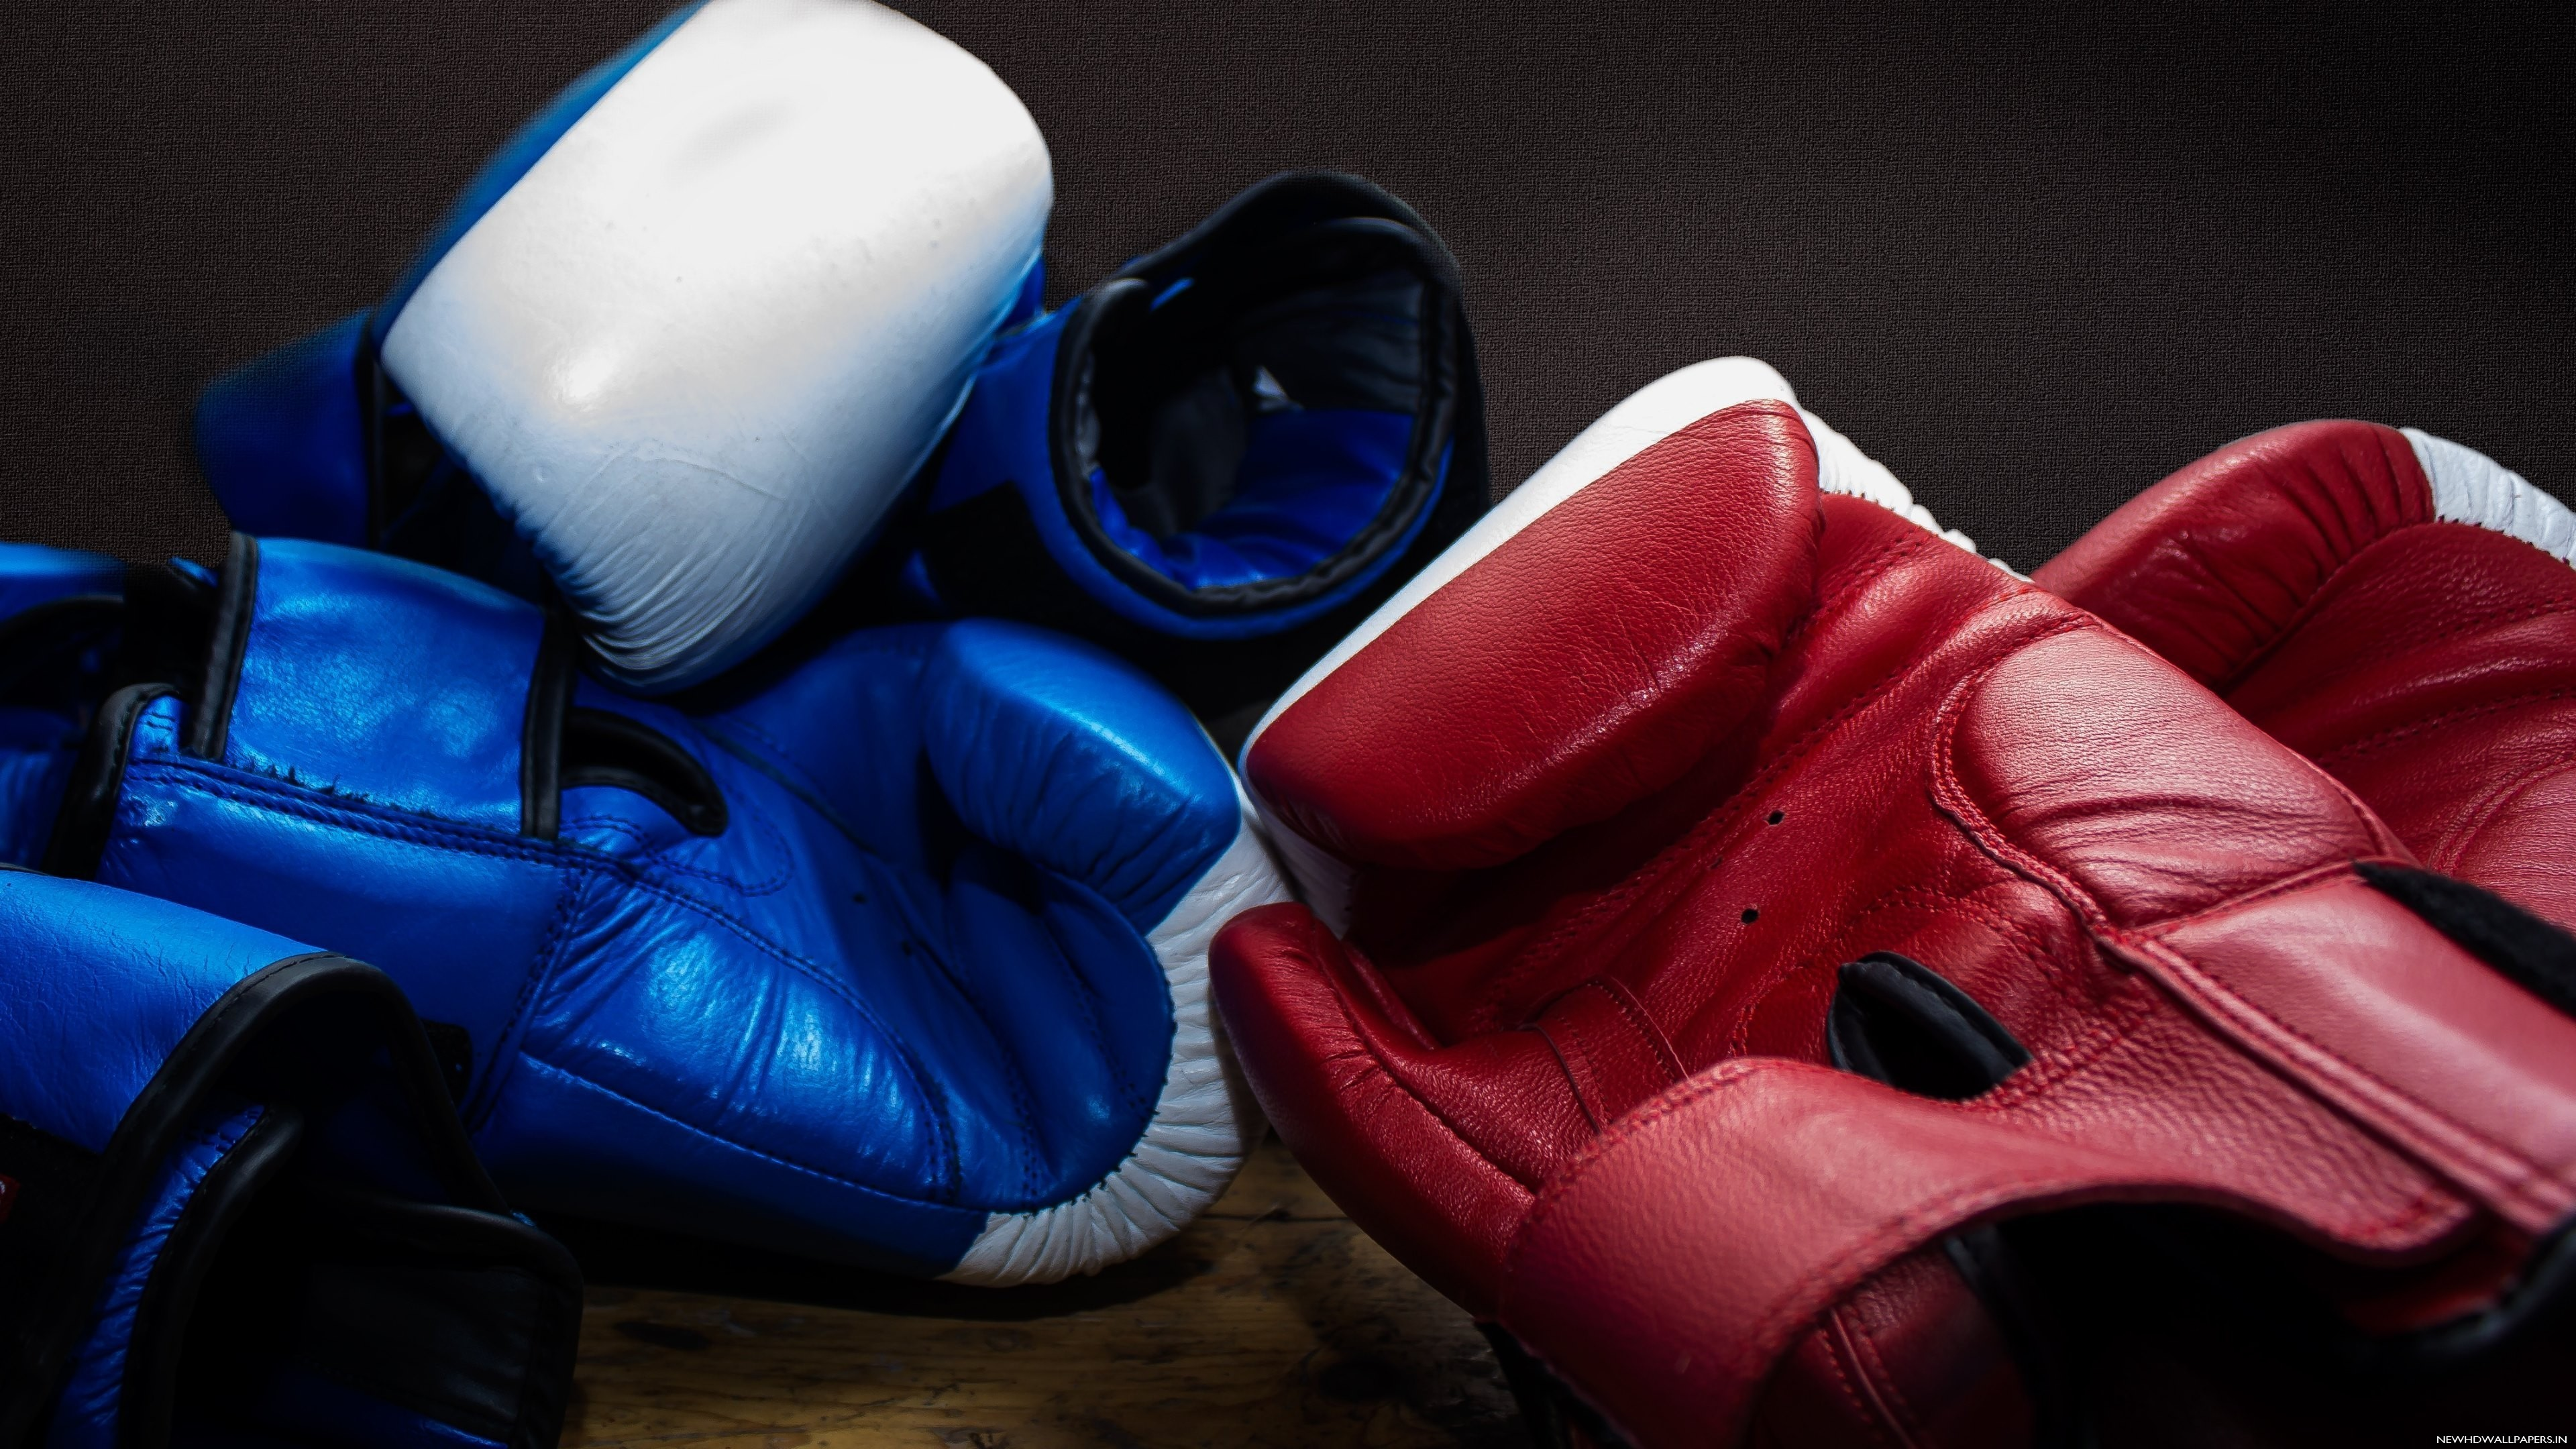 Res: 3840x2160, Blue, Red Boxing Gloves HD Wallpaper